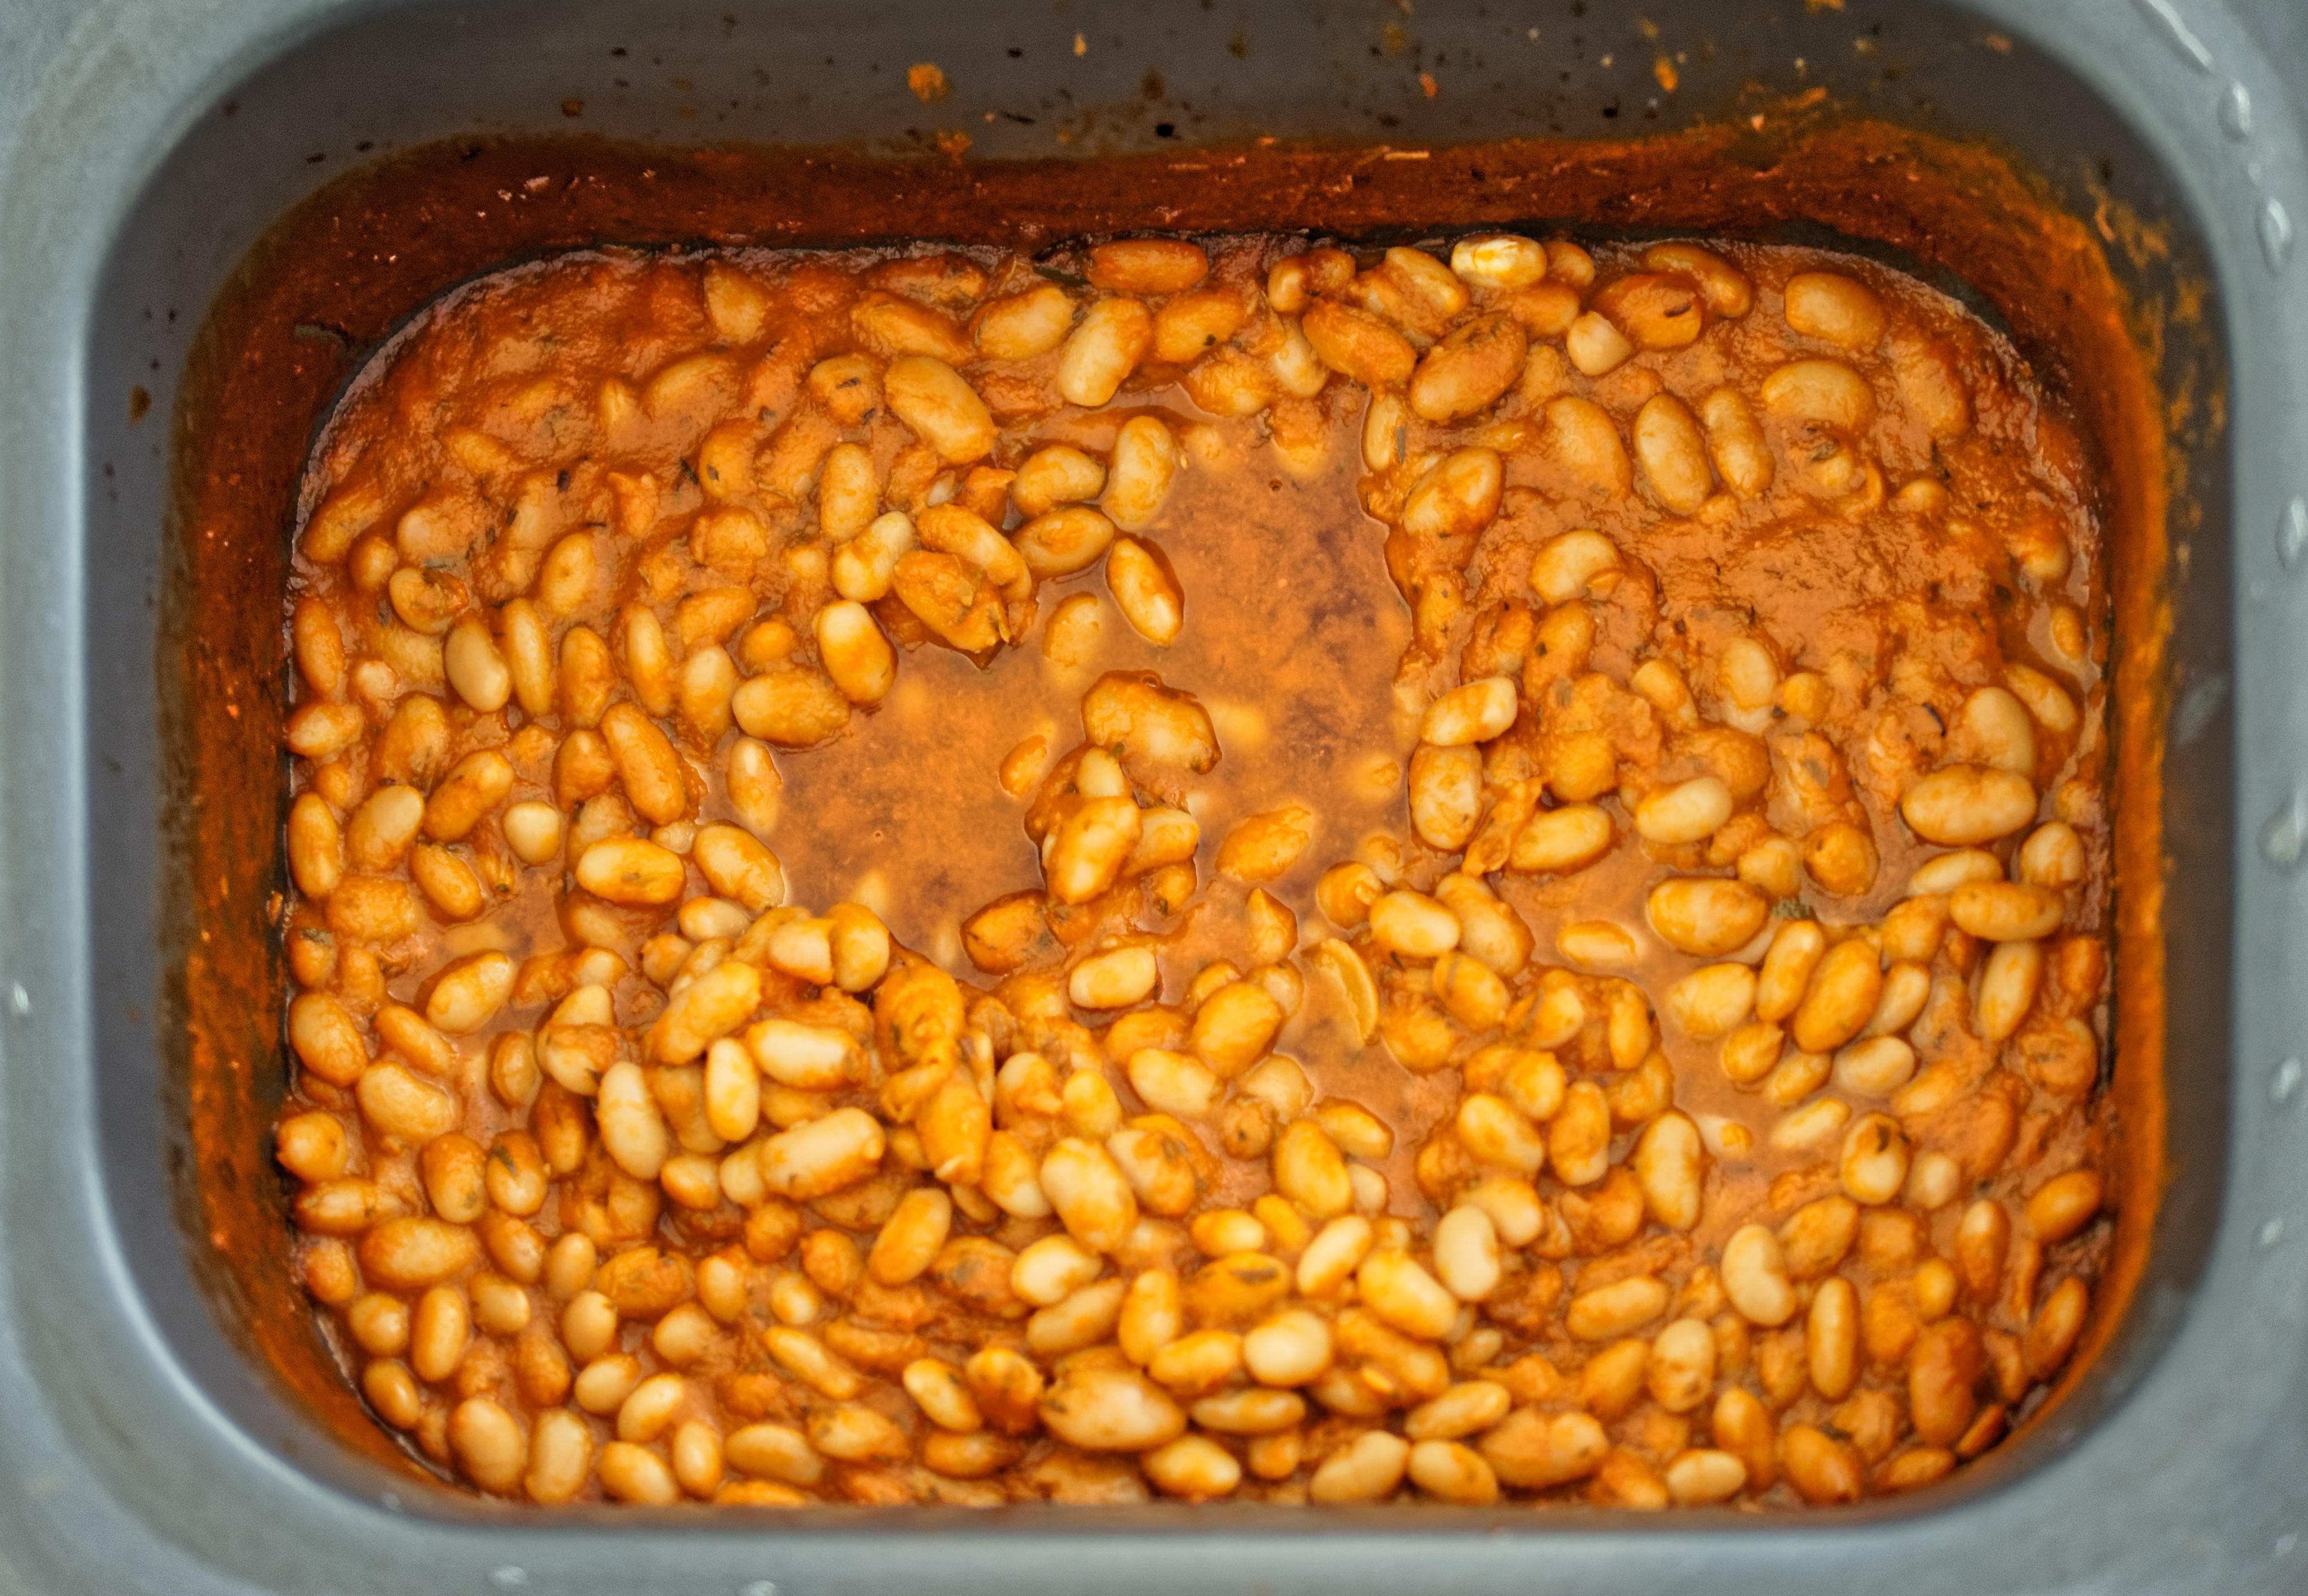 This should be Baked-beans-2.jpeg.  Is it missing?